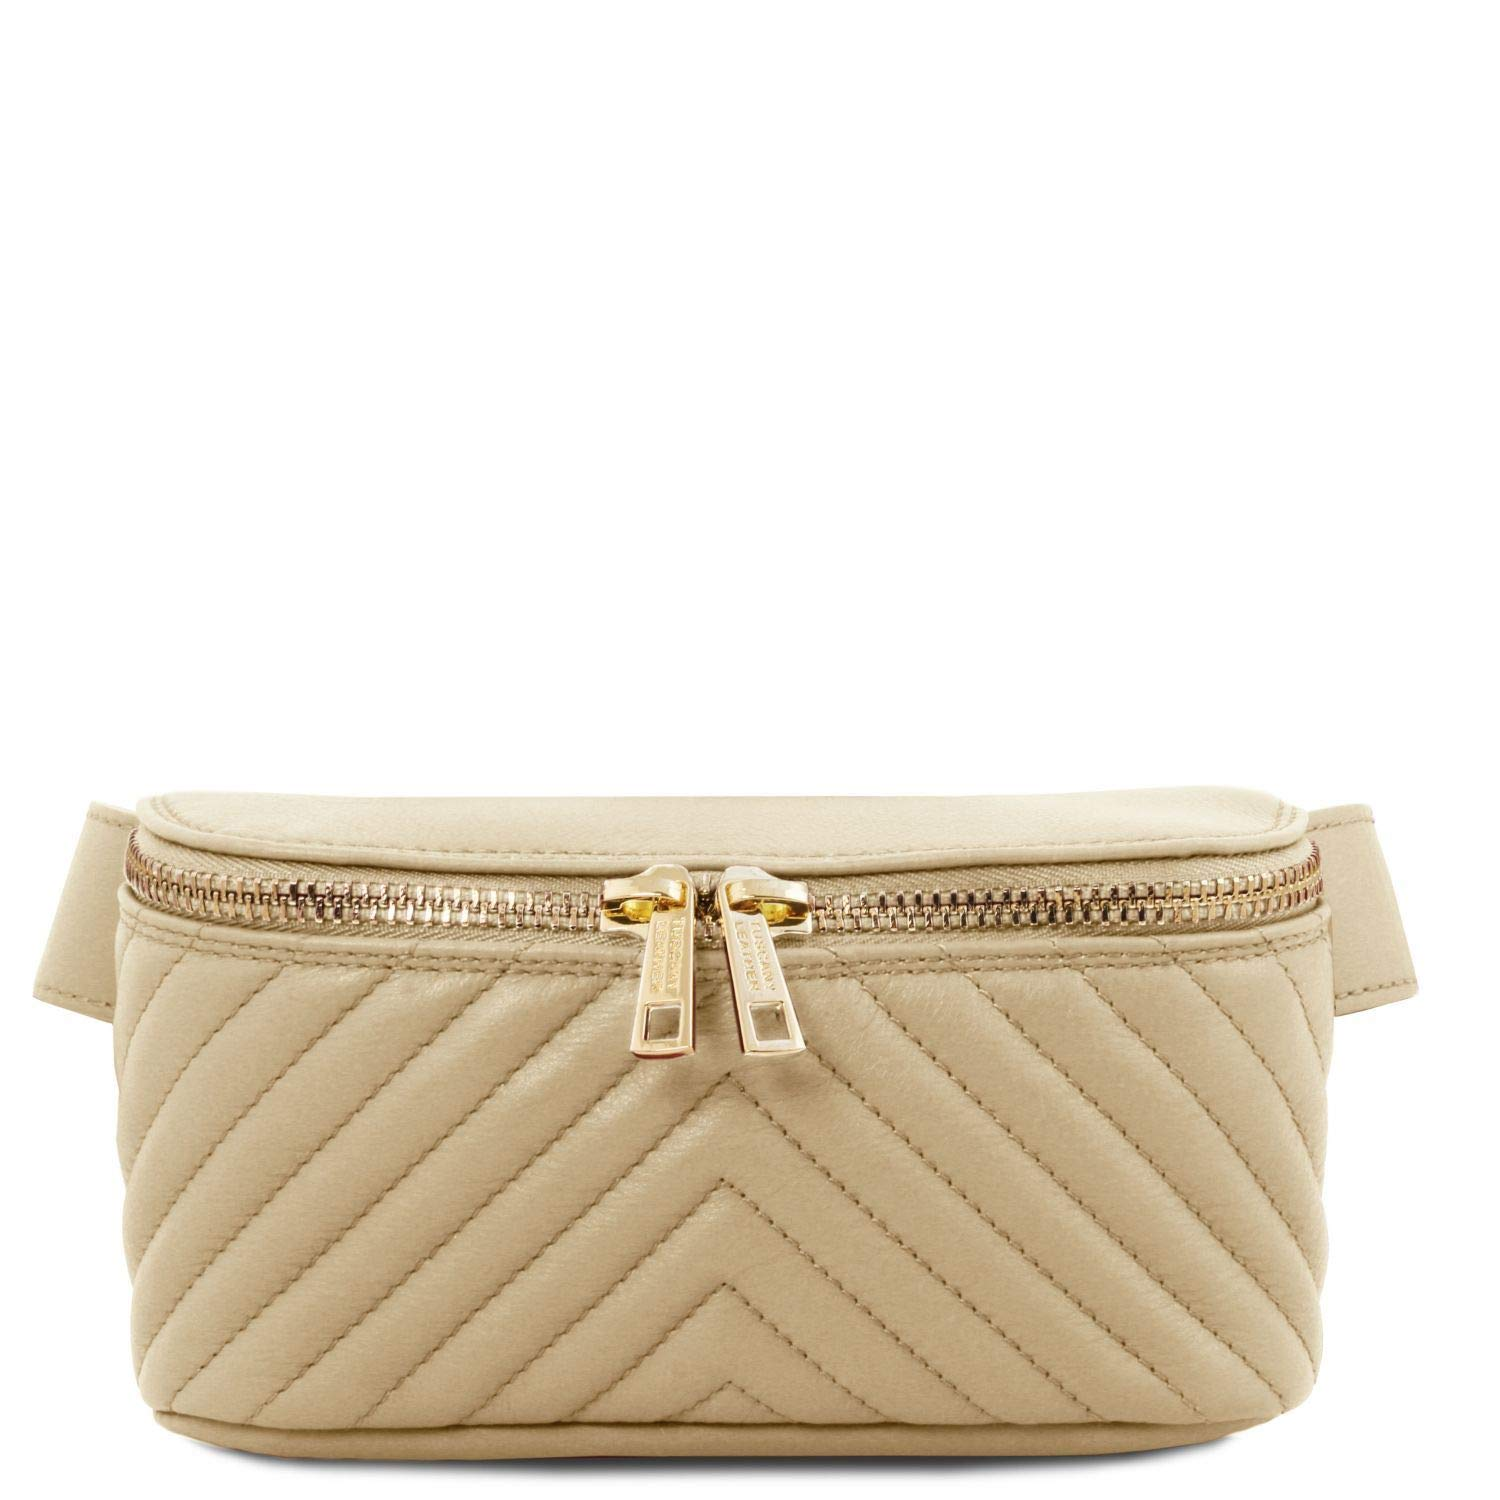 Tuscany Leather TLBag Soft leather fanny pack Beige